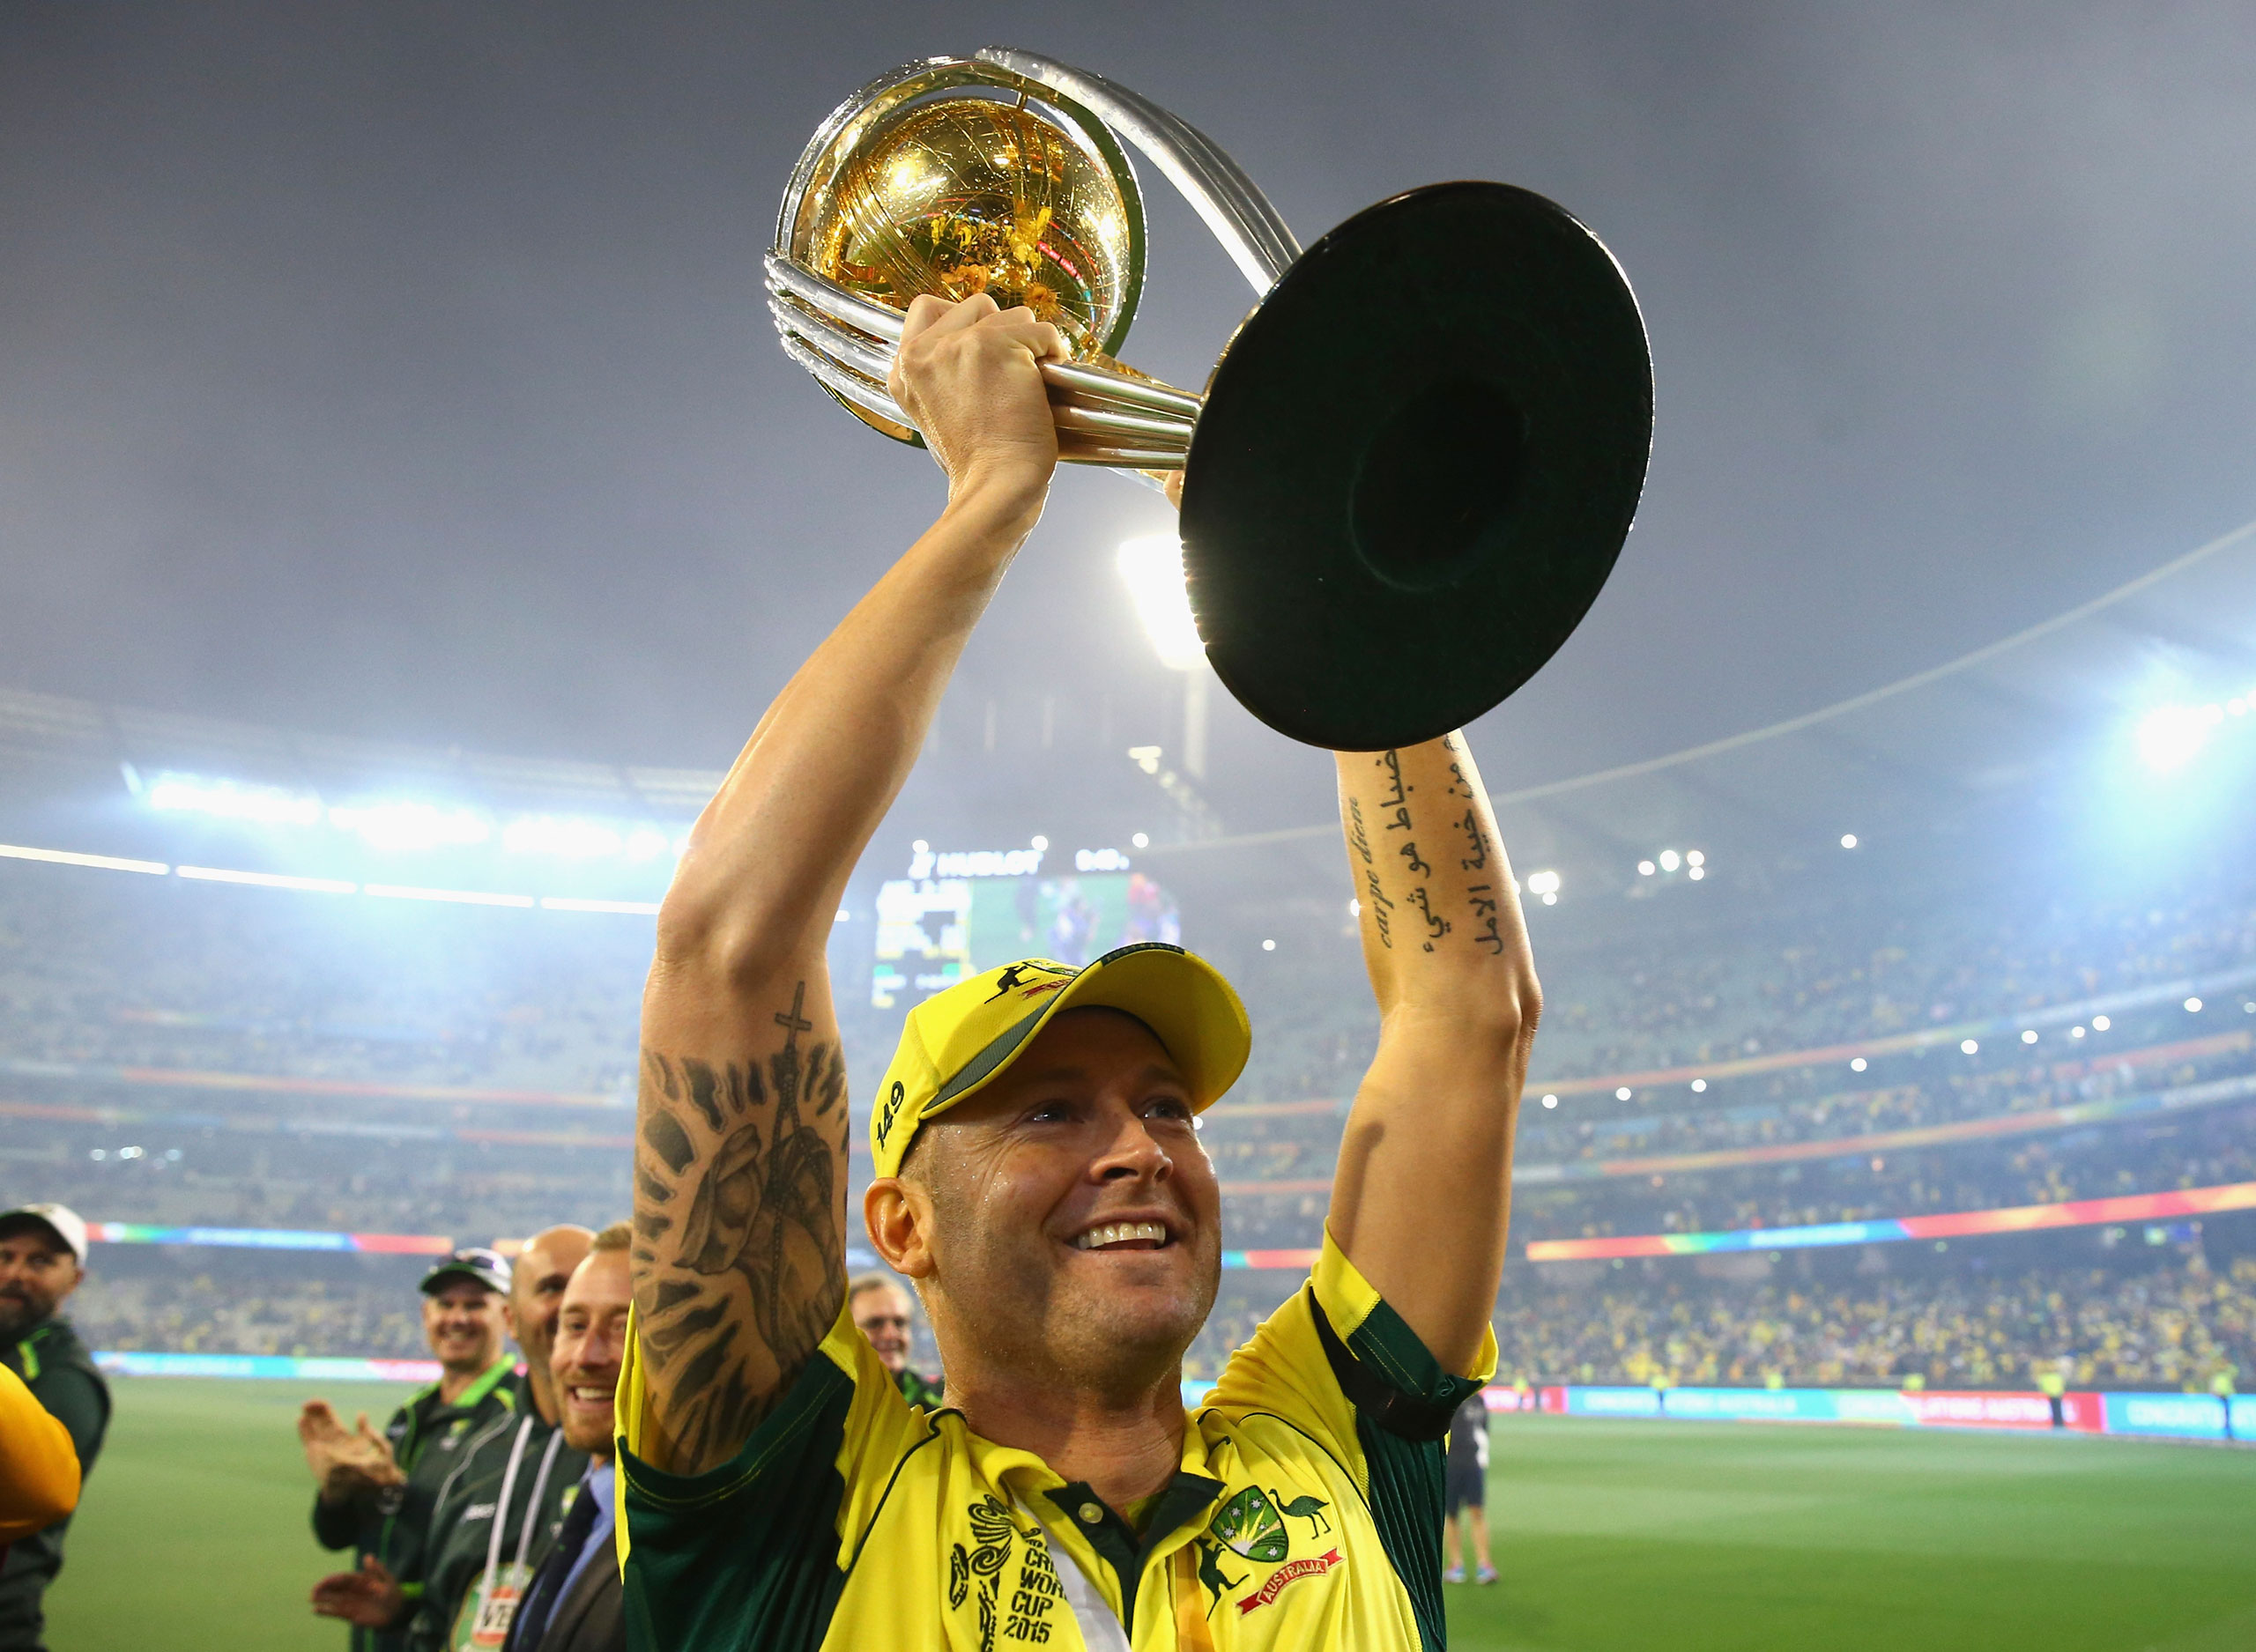 Michael Clarke of Australia celebrates with the trophy during the 2015 ICC Cricket World Cup final match between Australia and New Zealand at Melbourne Cricket Ground on March 29, 2015 in Melbourne.